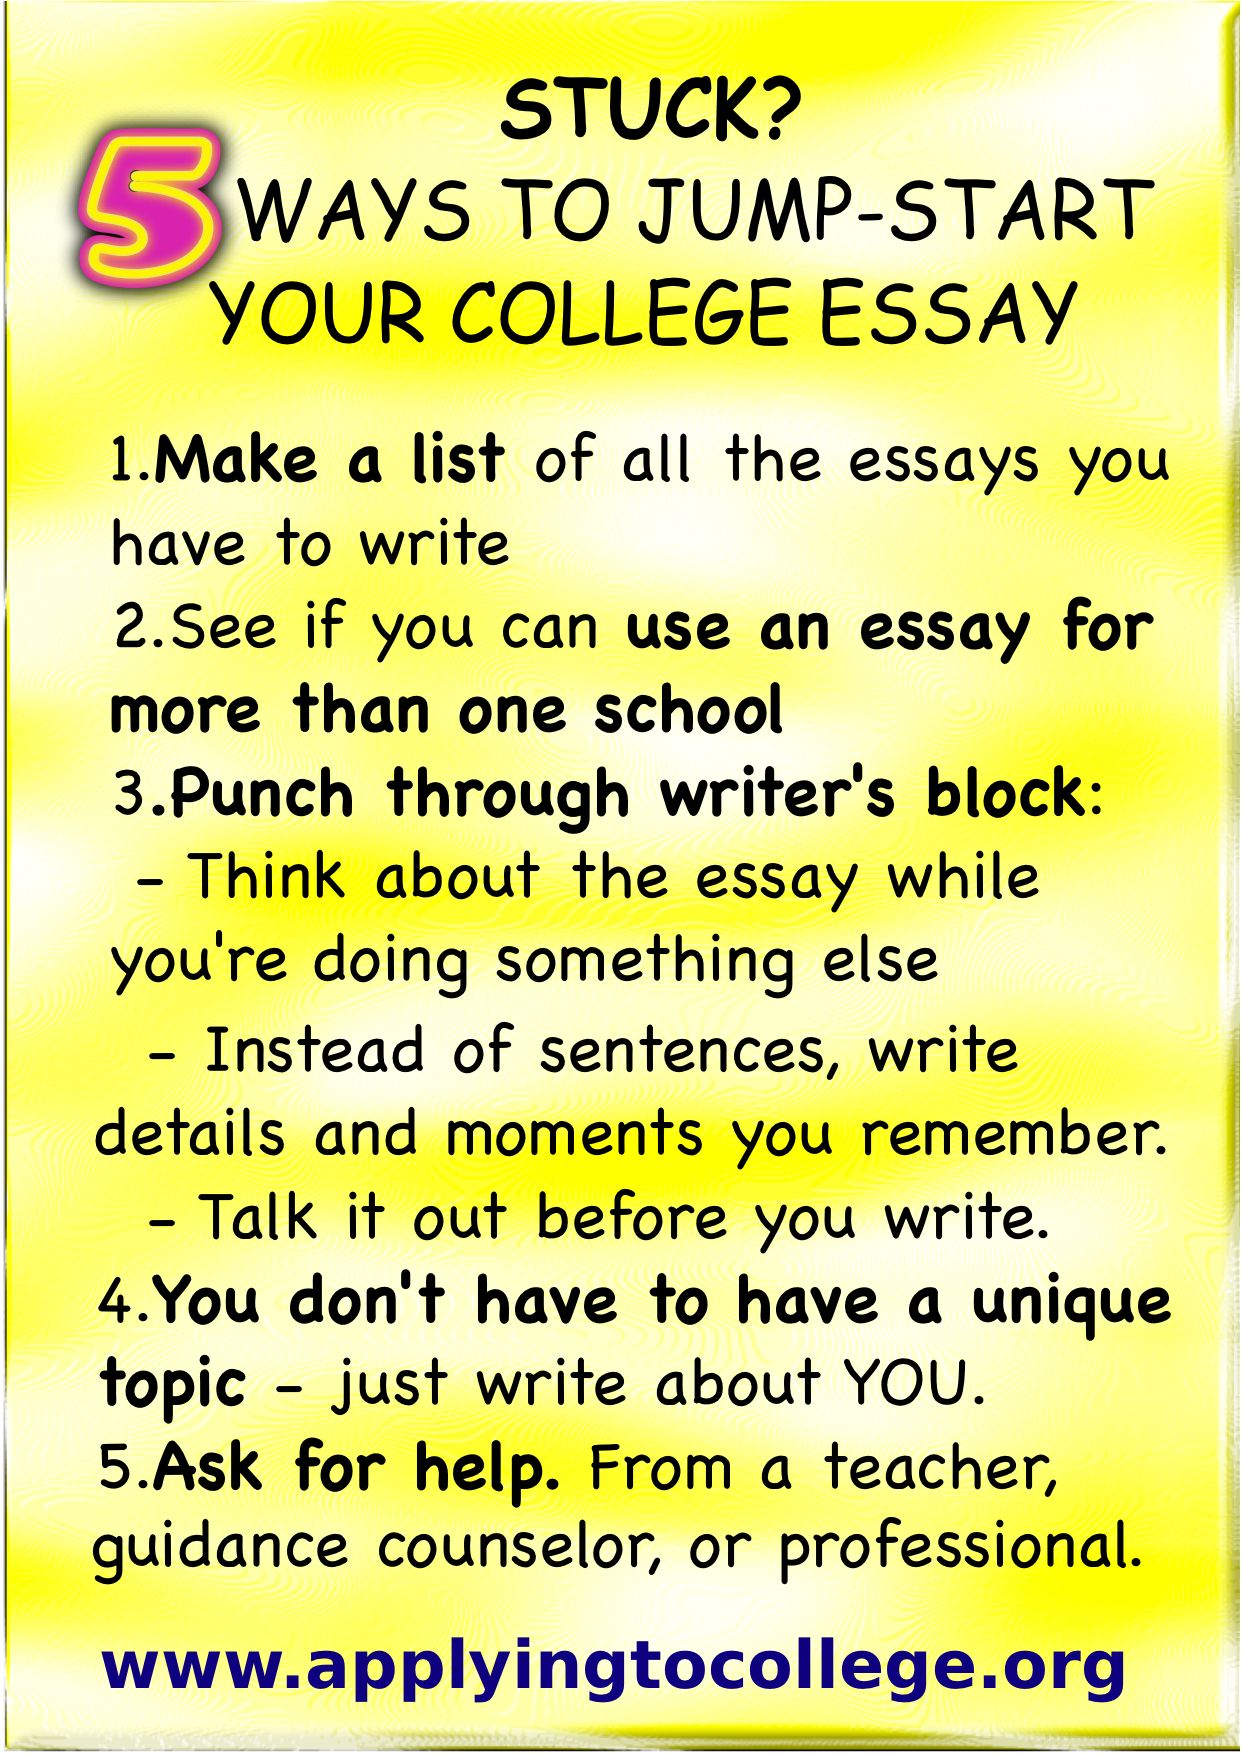 016 Essay Example Writing College Application Rare A Topics To Write On Tips For About Yourself Full